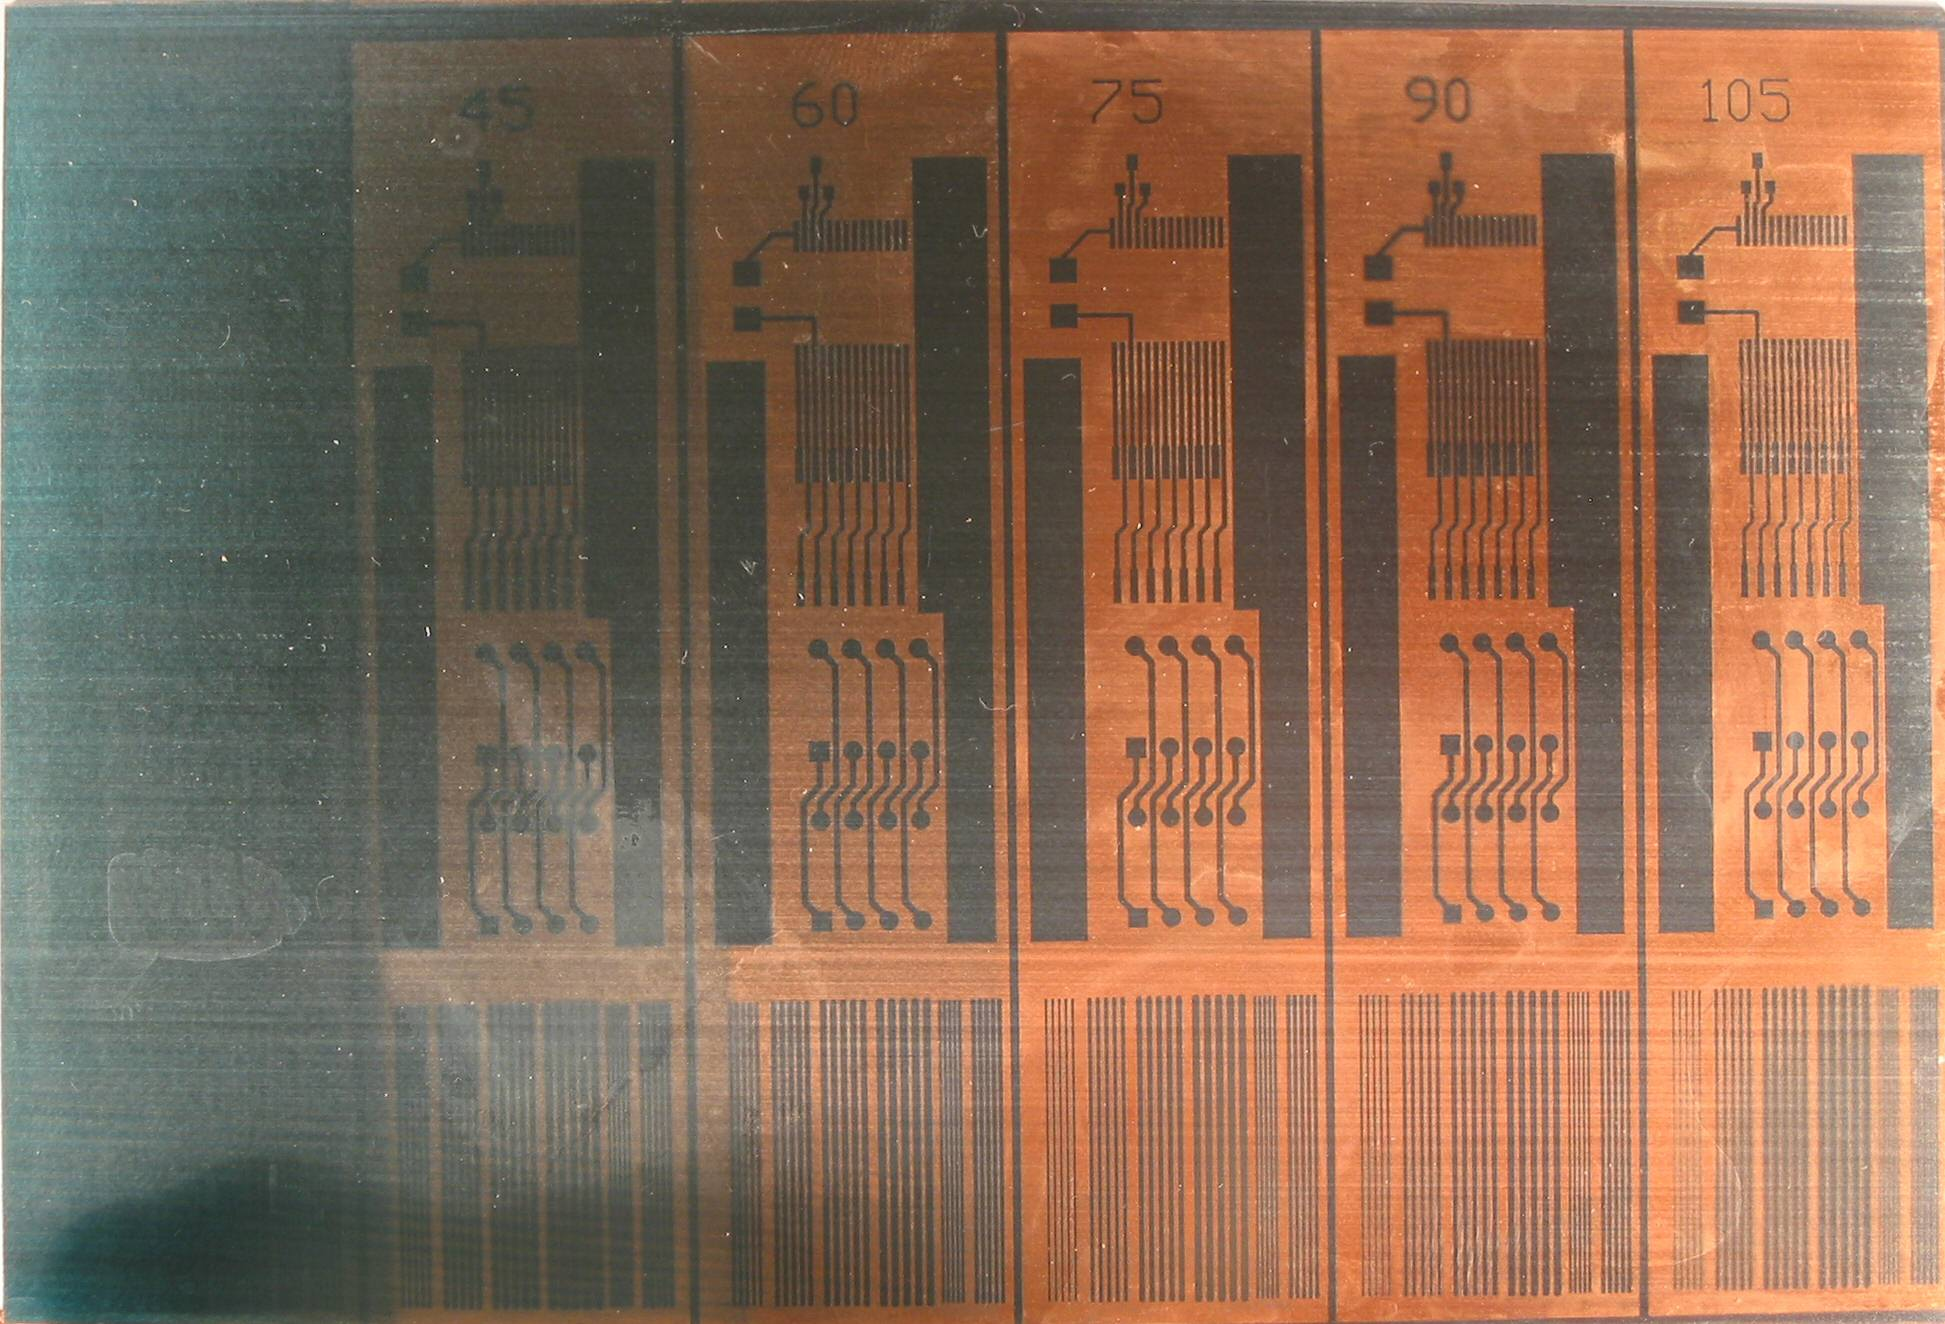 Uv Exposure Light Box Vertical Etching Tank For Diy Pcb Electronicslab The Picture Is Of Pretty Poor Quality Focusing Ok But Lighting And Dirty Circuit Board Make It Look As You Can See 30 Seconds